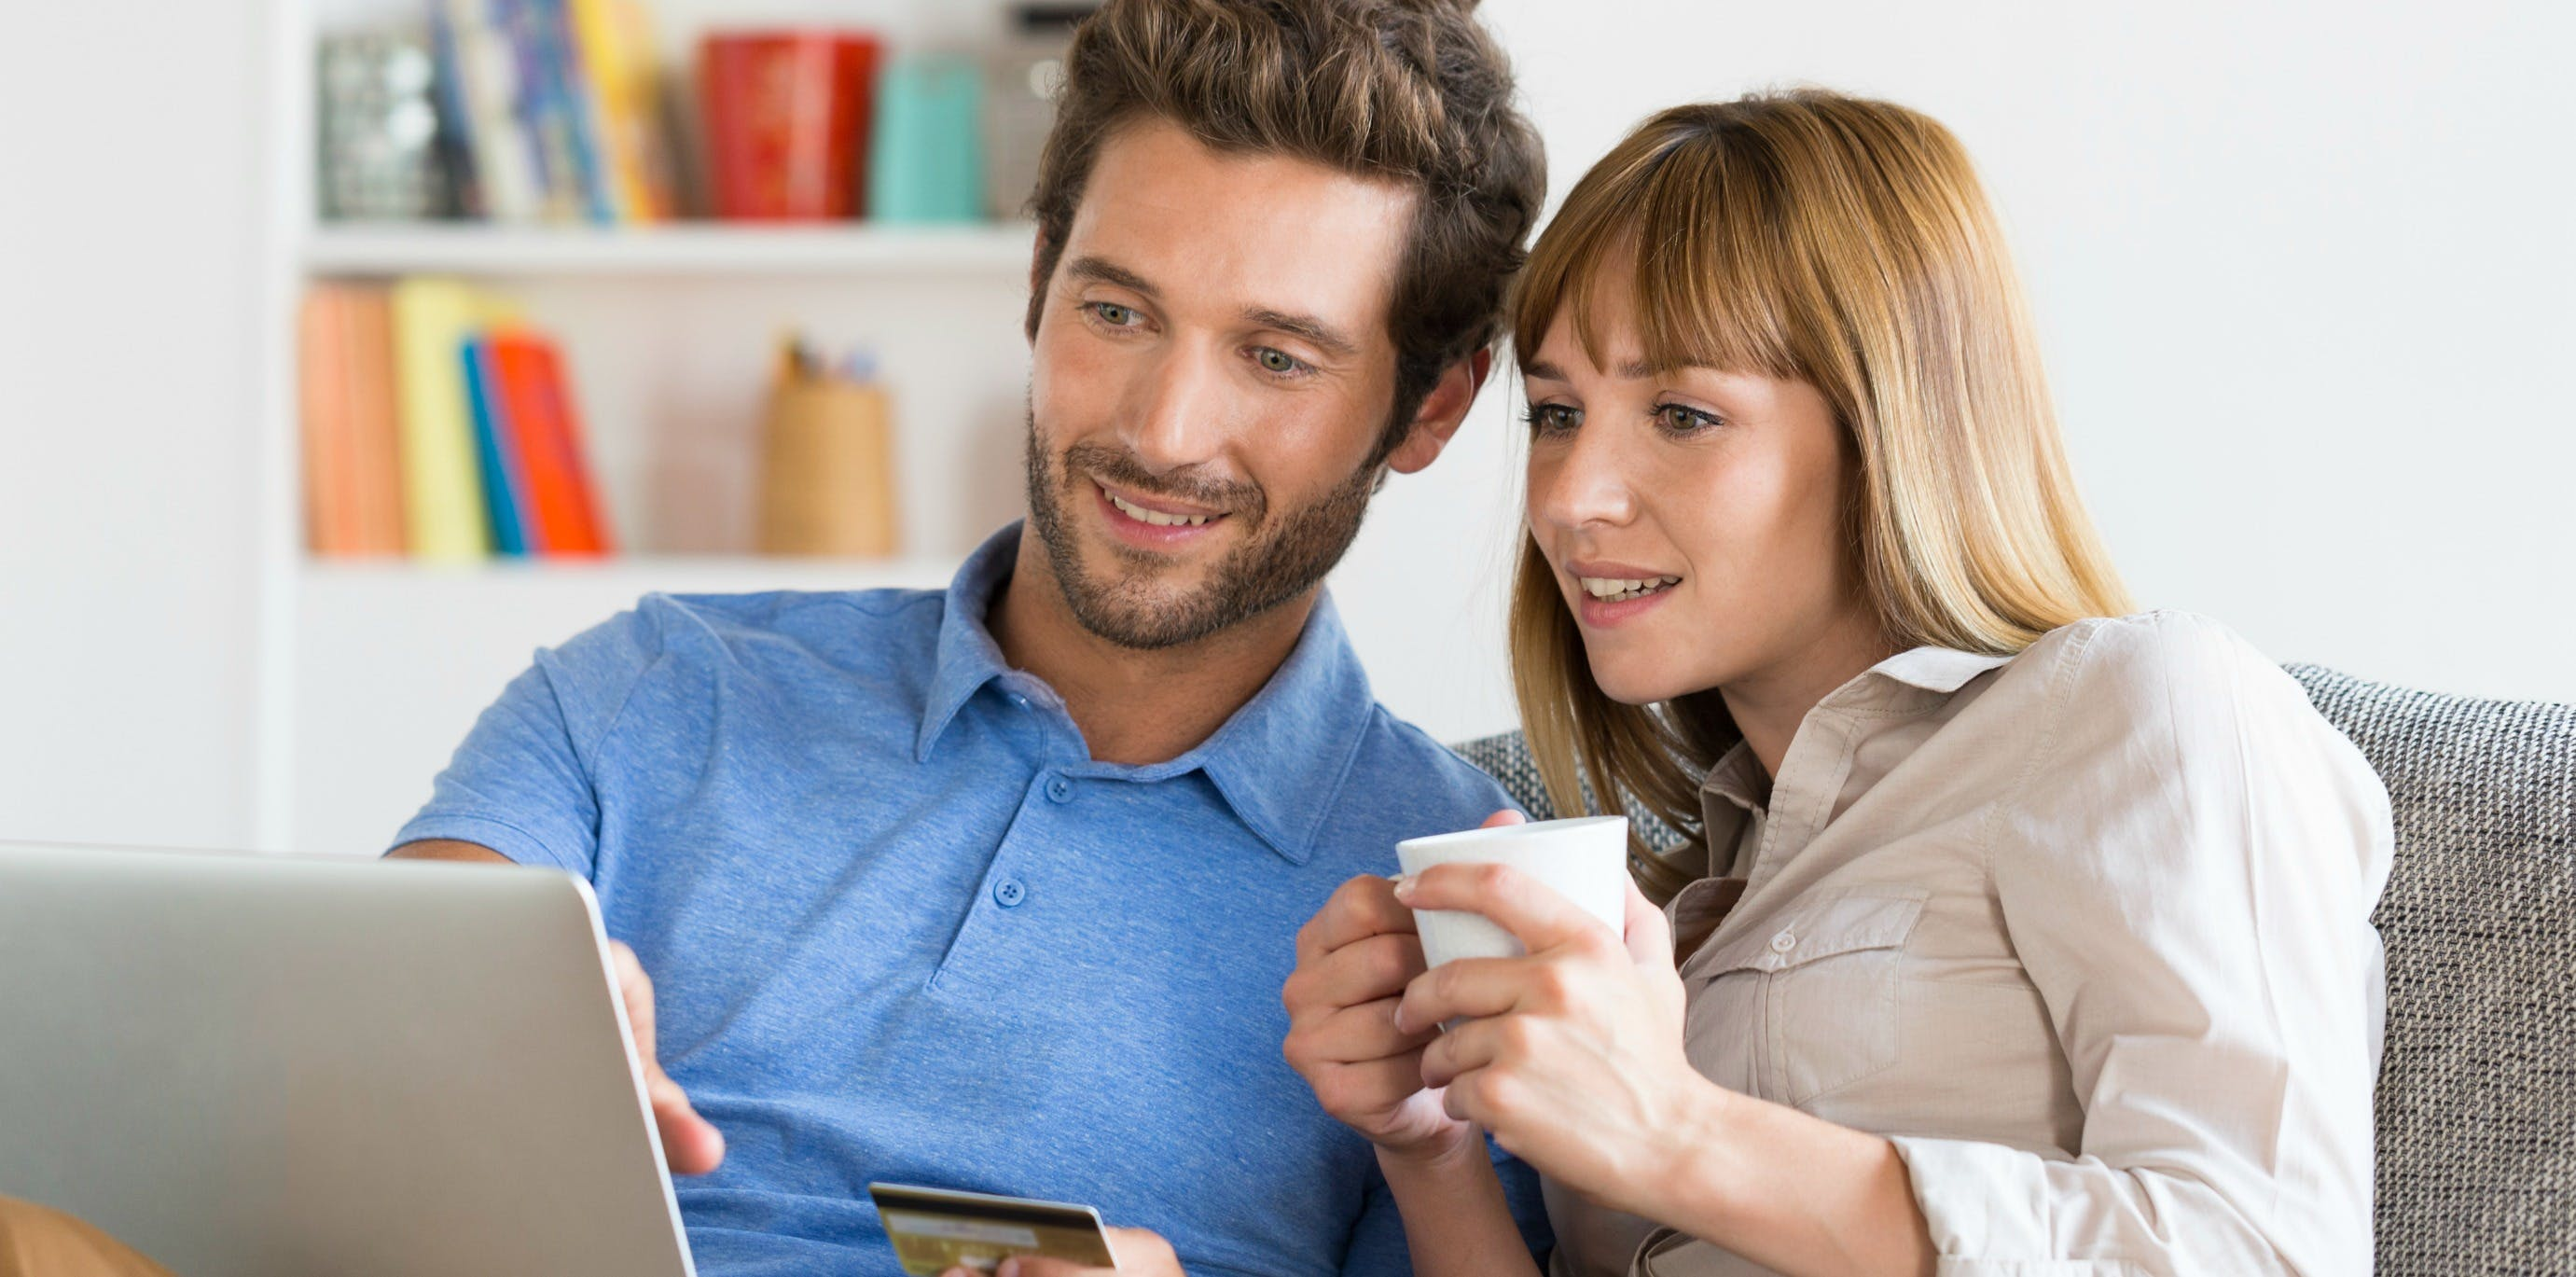 How to avoid interest with a credit card grace period